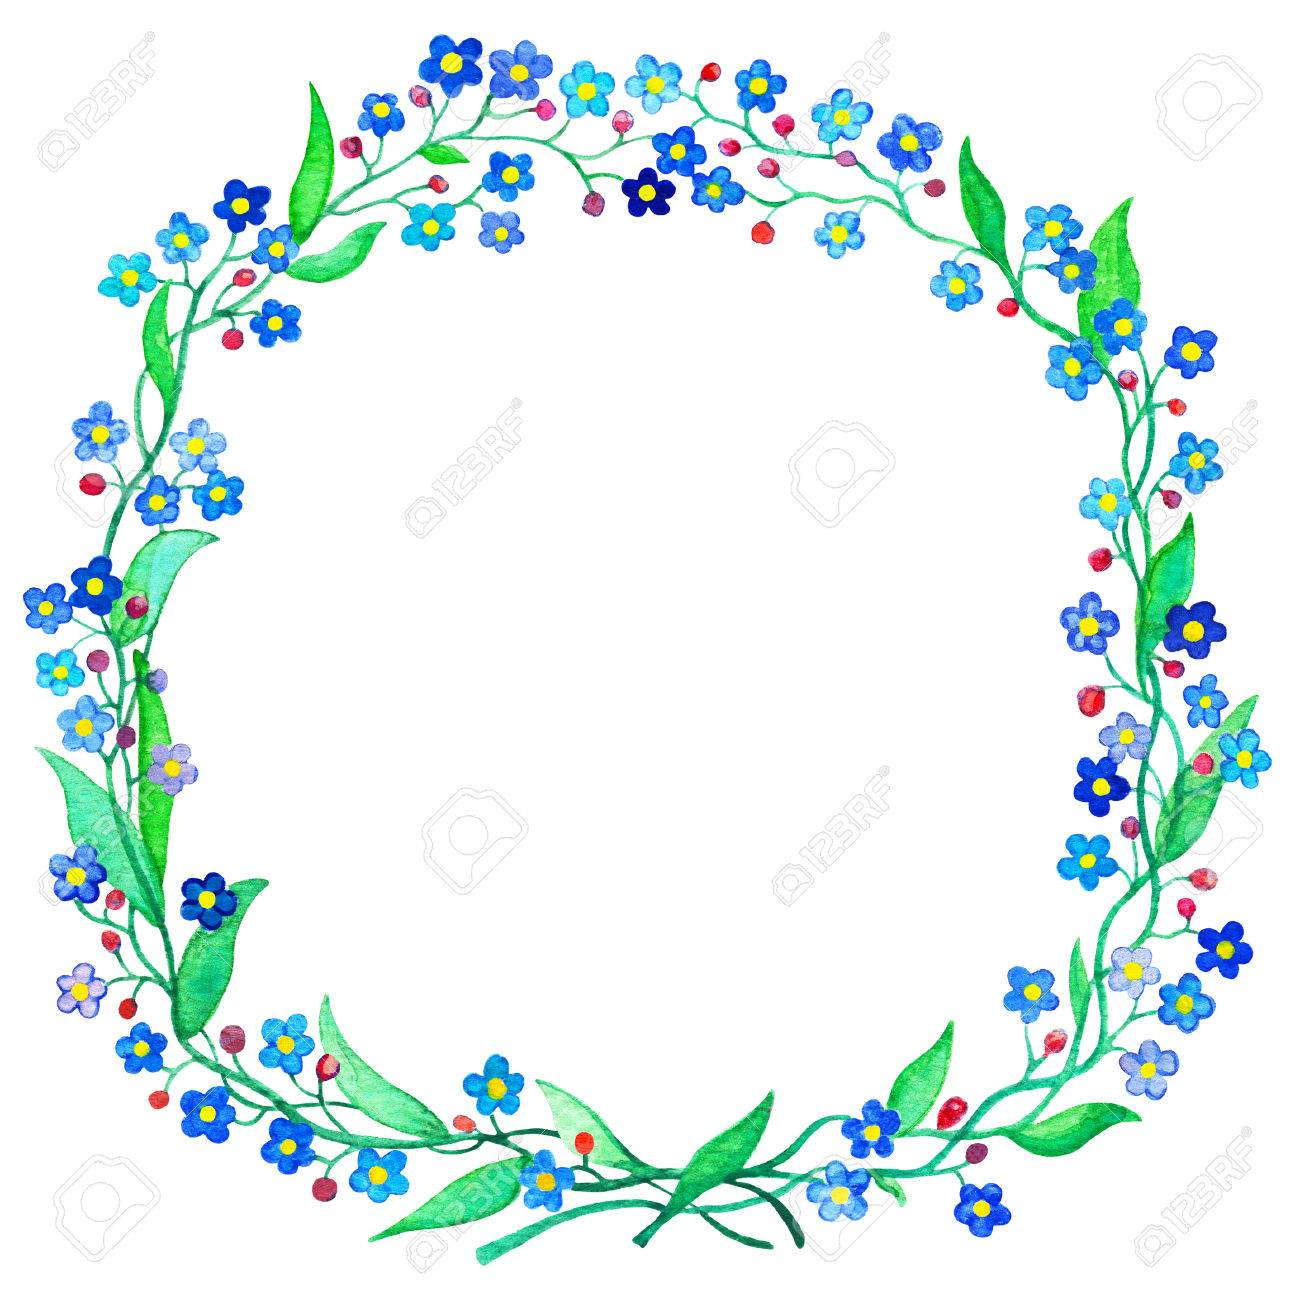 Blue forget me not wreath watercolor illustration spring flower blue forget me not wreath watercolor illustration spring flower forgetmenot on white background izmirmasajfo Gallery